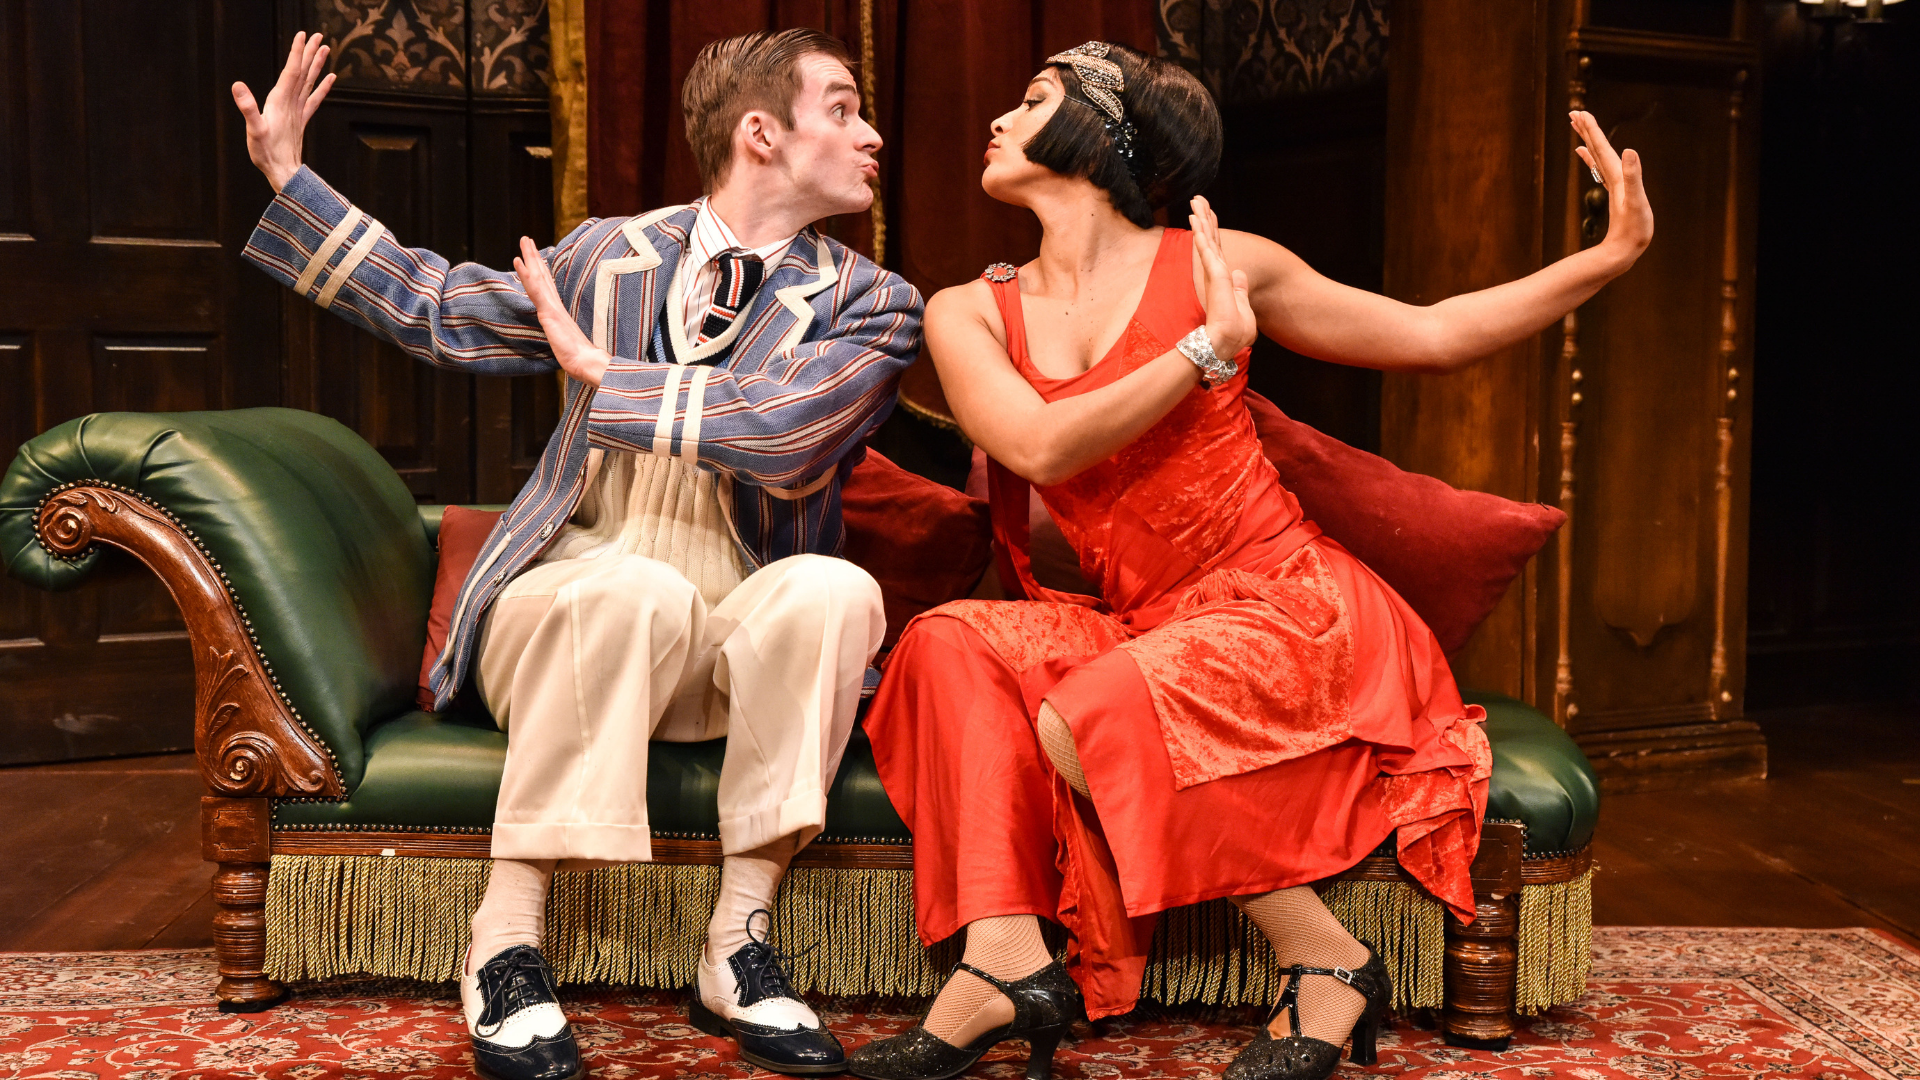 The Play That Goes Wrong Production Shot: Max (Tom Babbage) and Sandra (Laura White) are sat down on the chaise longue looking at each other pouting lips as if to kiss.